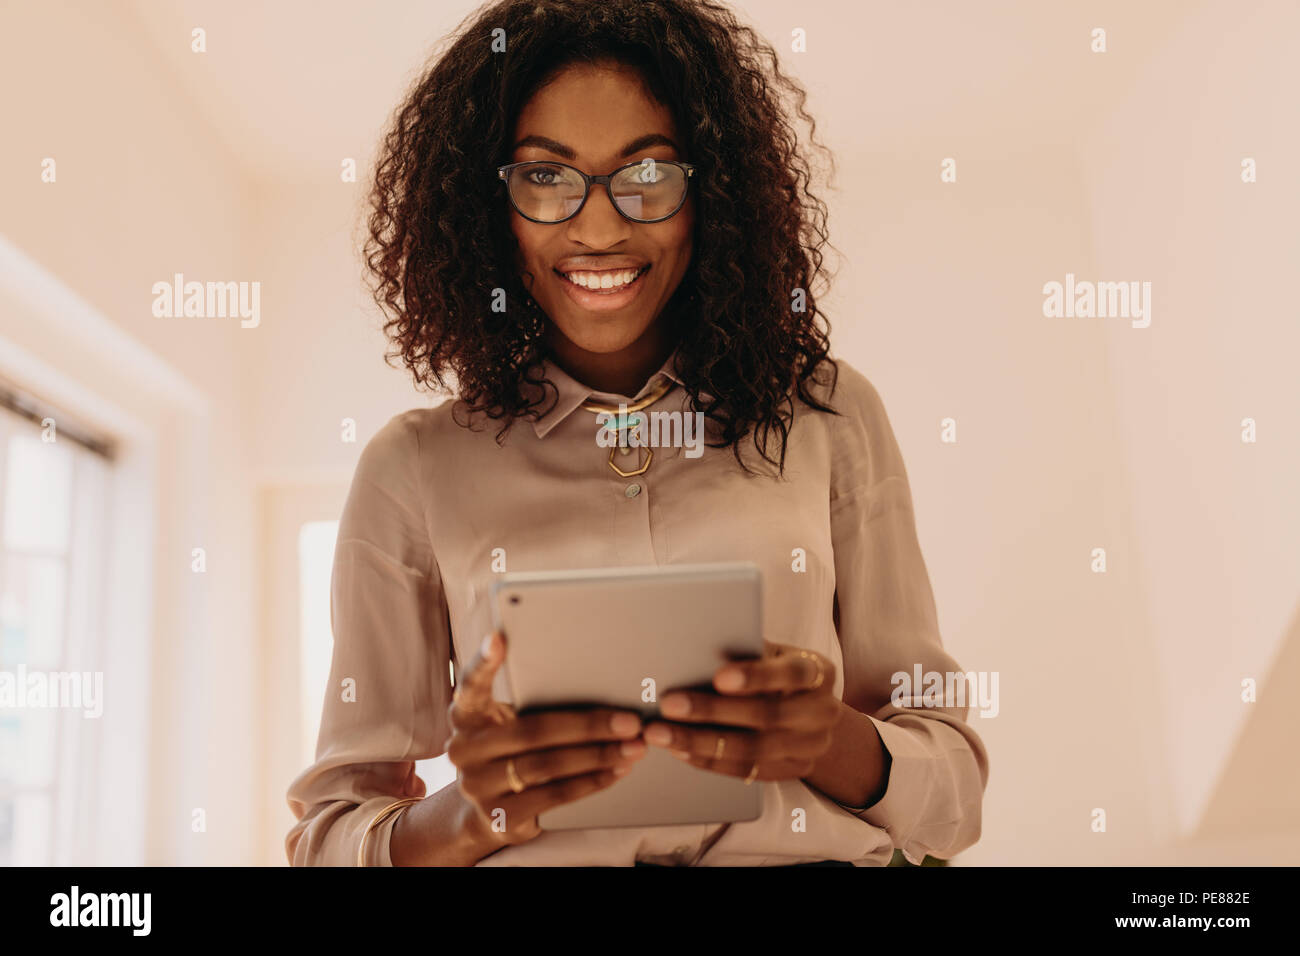 Portrait of a businesswoman in formal attire holding a tablet pc in hands. Curly haired woman entrepreneur in spectacles at home with a tablet pc in h - Stock Image